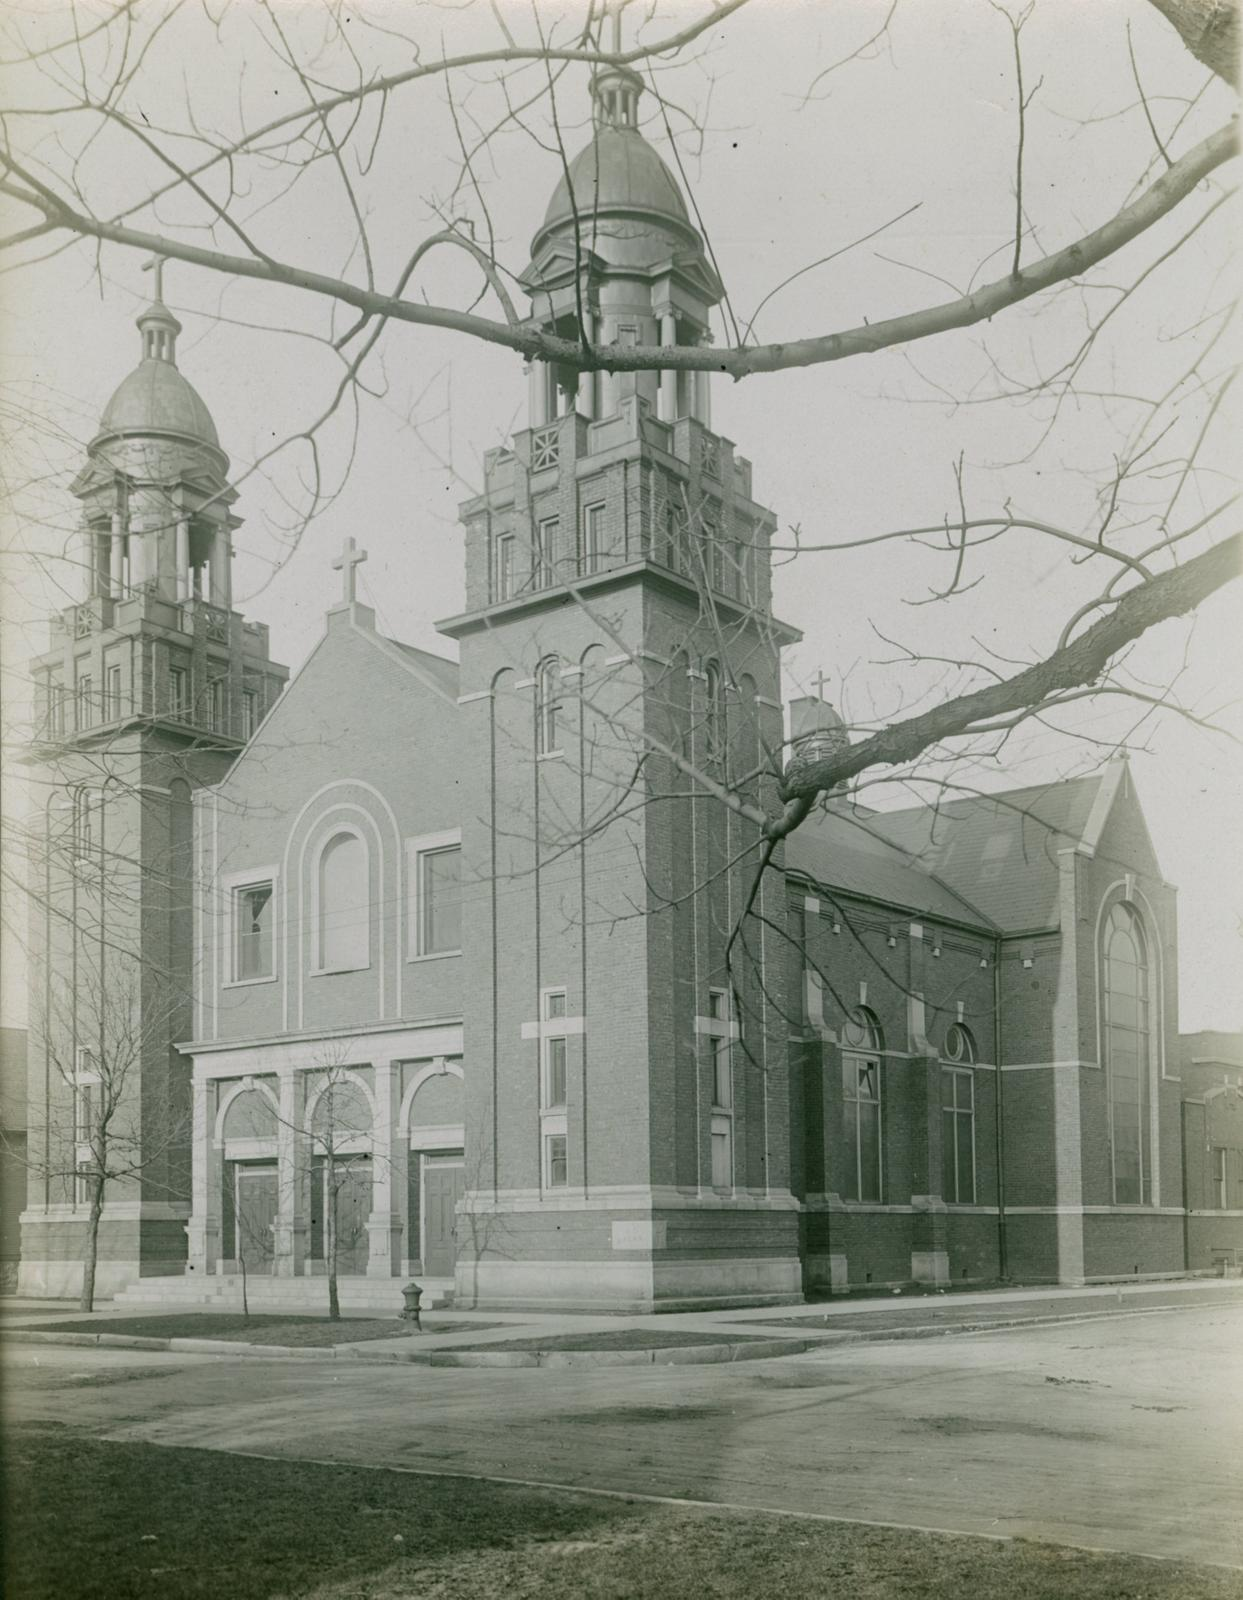 Saint Louis De France Catholic Church, Chicago, April 22, 1913